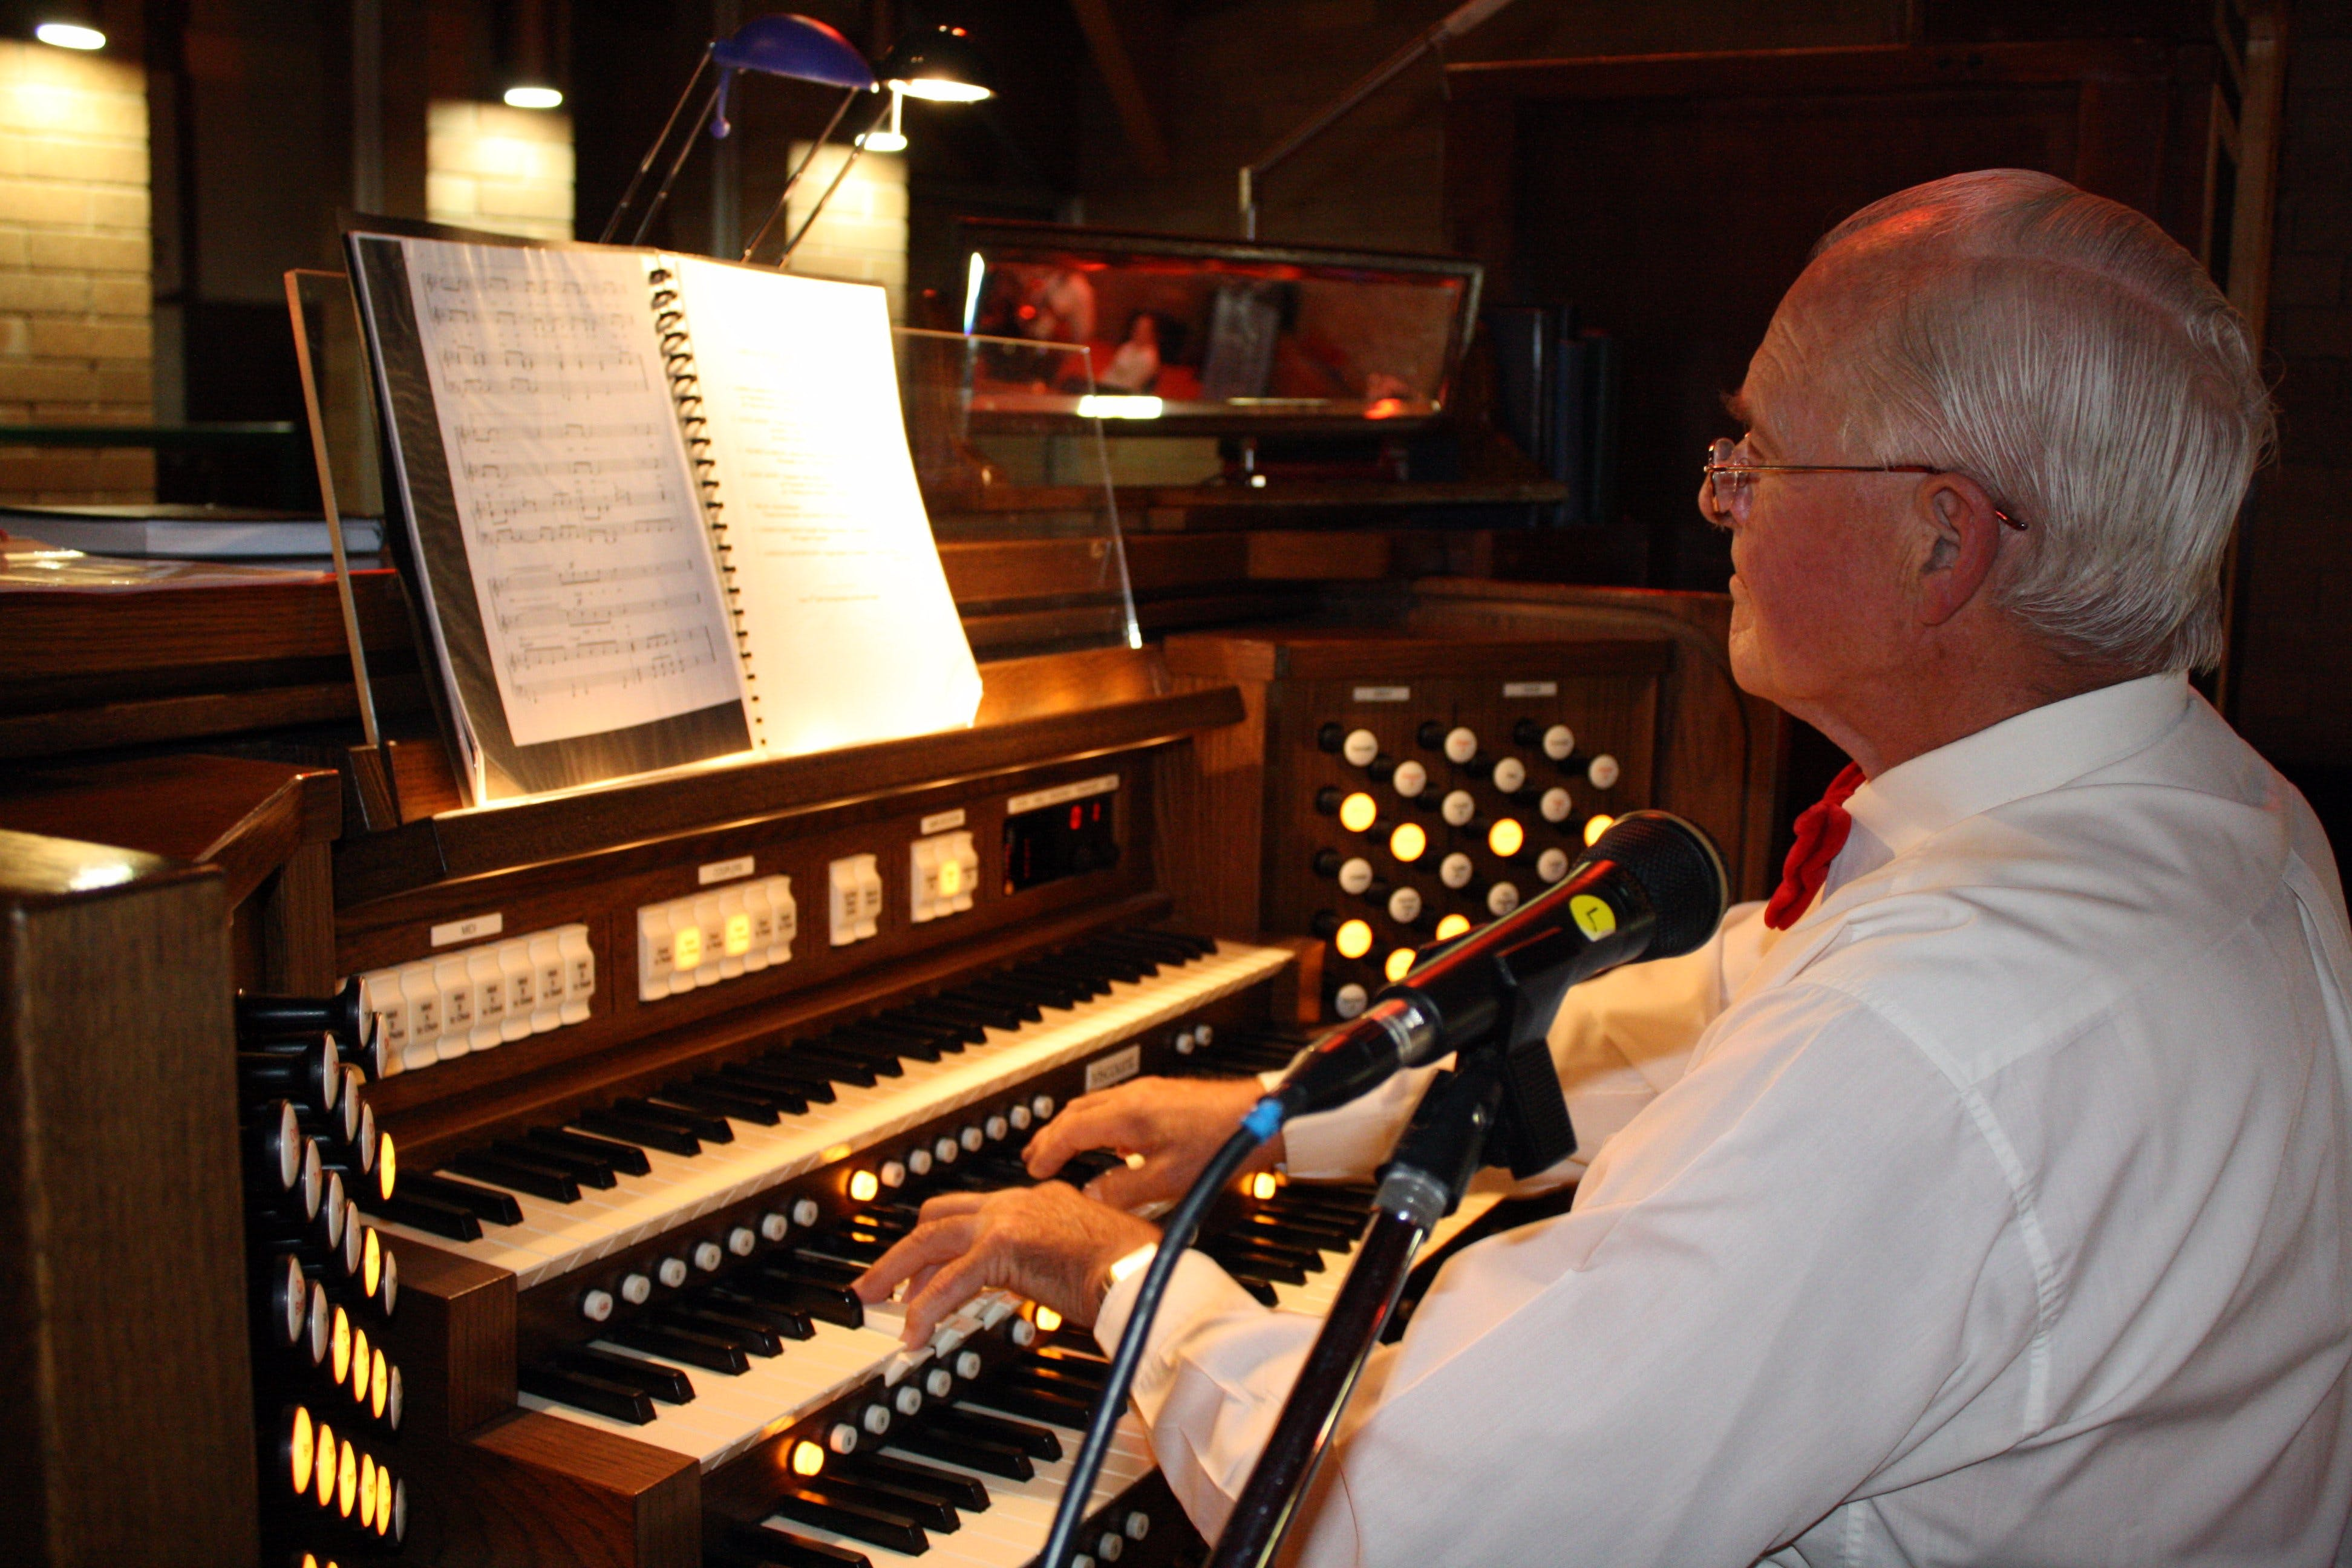 St Bartholomews Largest Digital Pipe Organ in the Southern Hemisphere - Tourism Brisbane